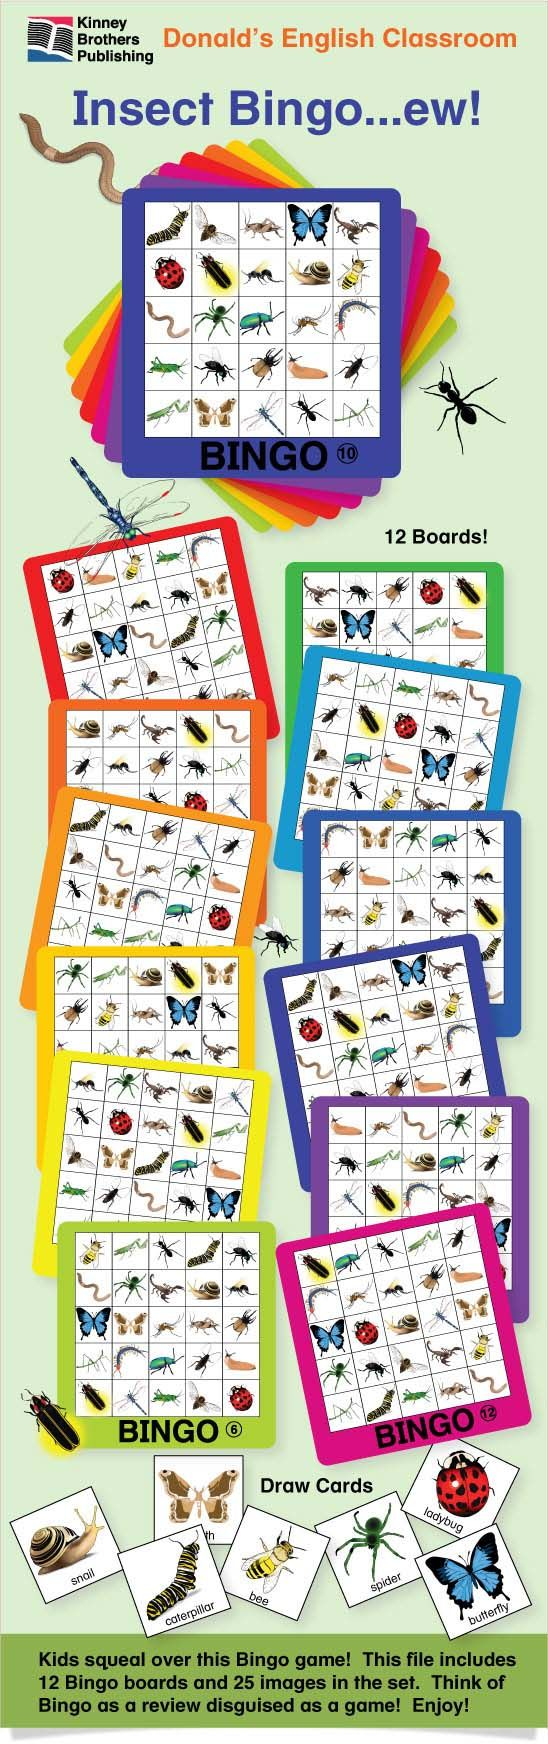 Insect Bingo - Kids squeal over this game!  This file includes 12 Bingo boards and only 25 images in the set - so you can play with your youngest ESL students.  Think of Bingo as a review disguised as a game!  Also perfect for student centers, special holidays, or just icky fun!  Enjoy!  $2 on TpT  #ESL #EFL #ELL